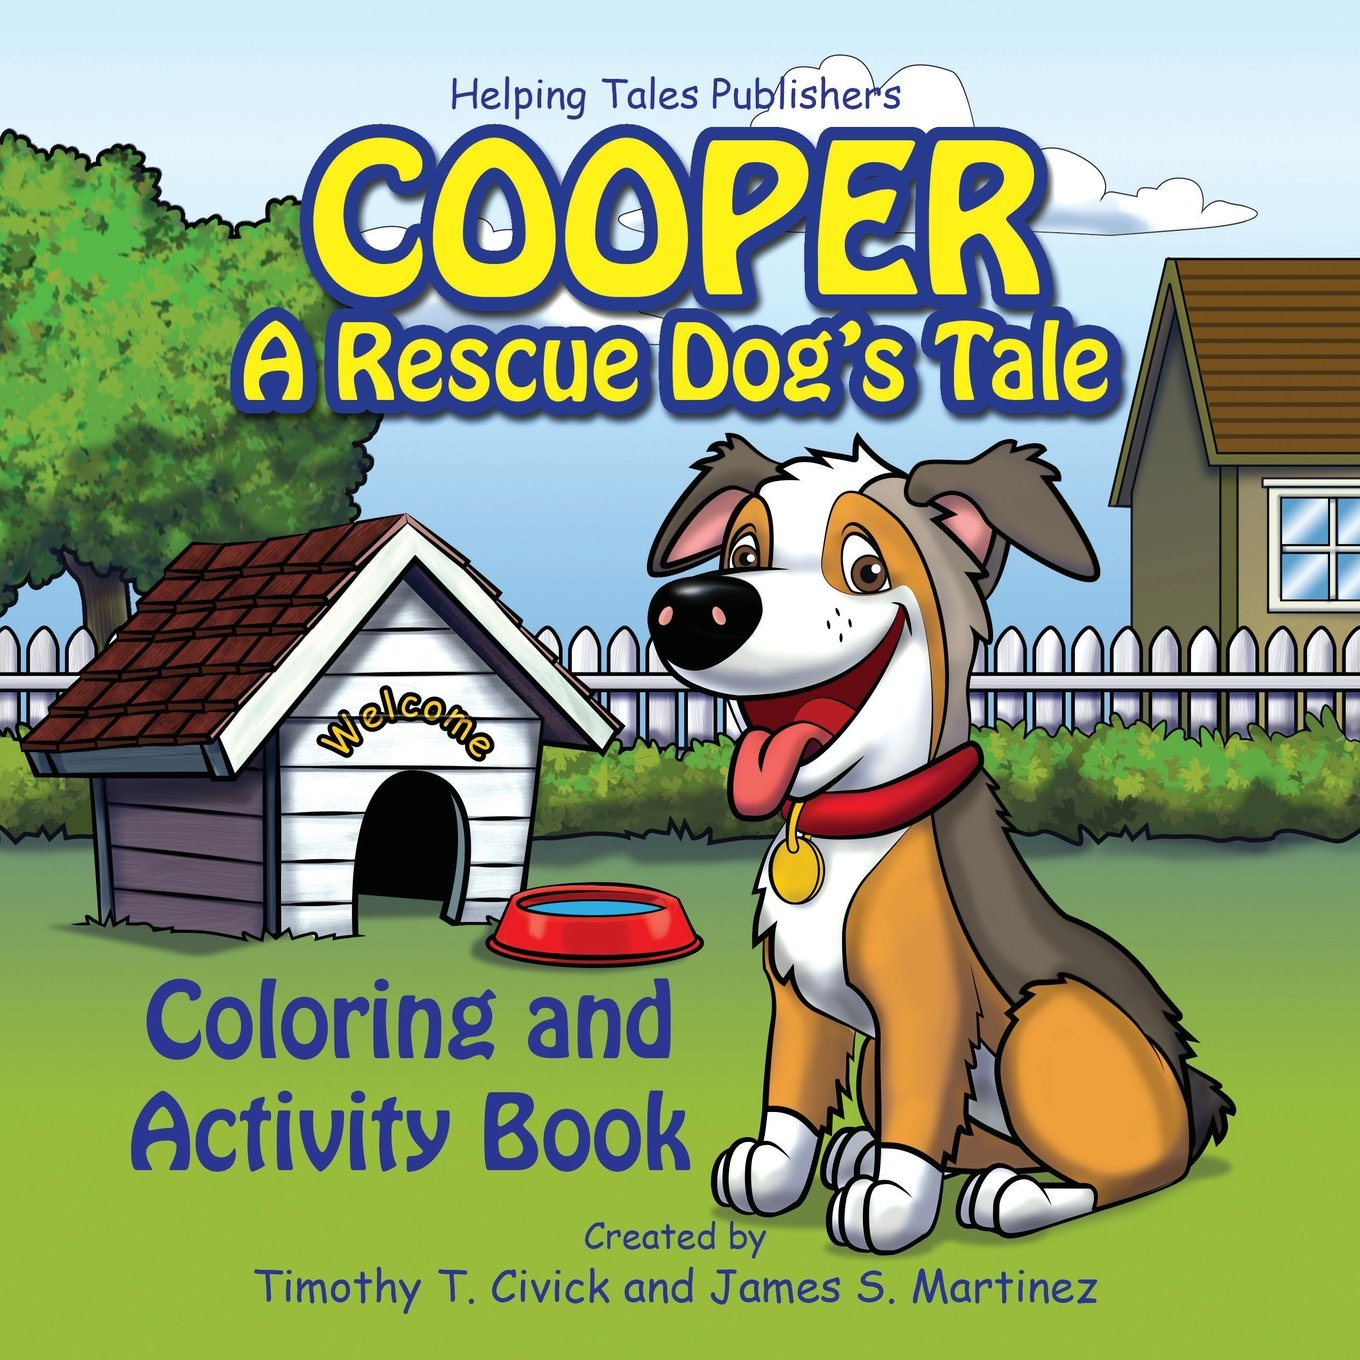 Colouring for adults benefits -  Benefits Of Coloring For Adults And Today We Want To Tell You About Two New Coloring Books That Also Help Animals By Promoting Pet Adoption And Raising